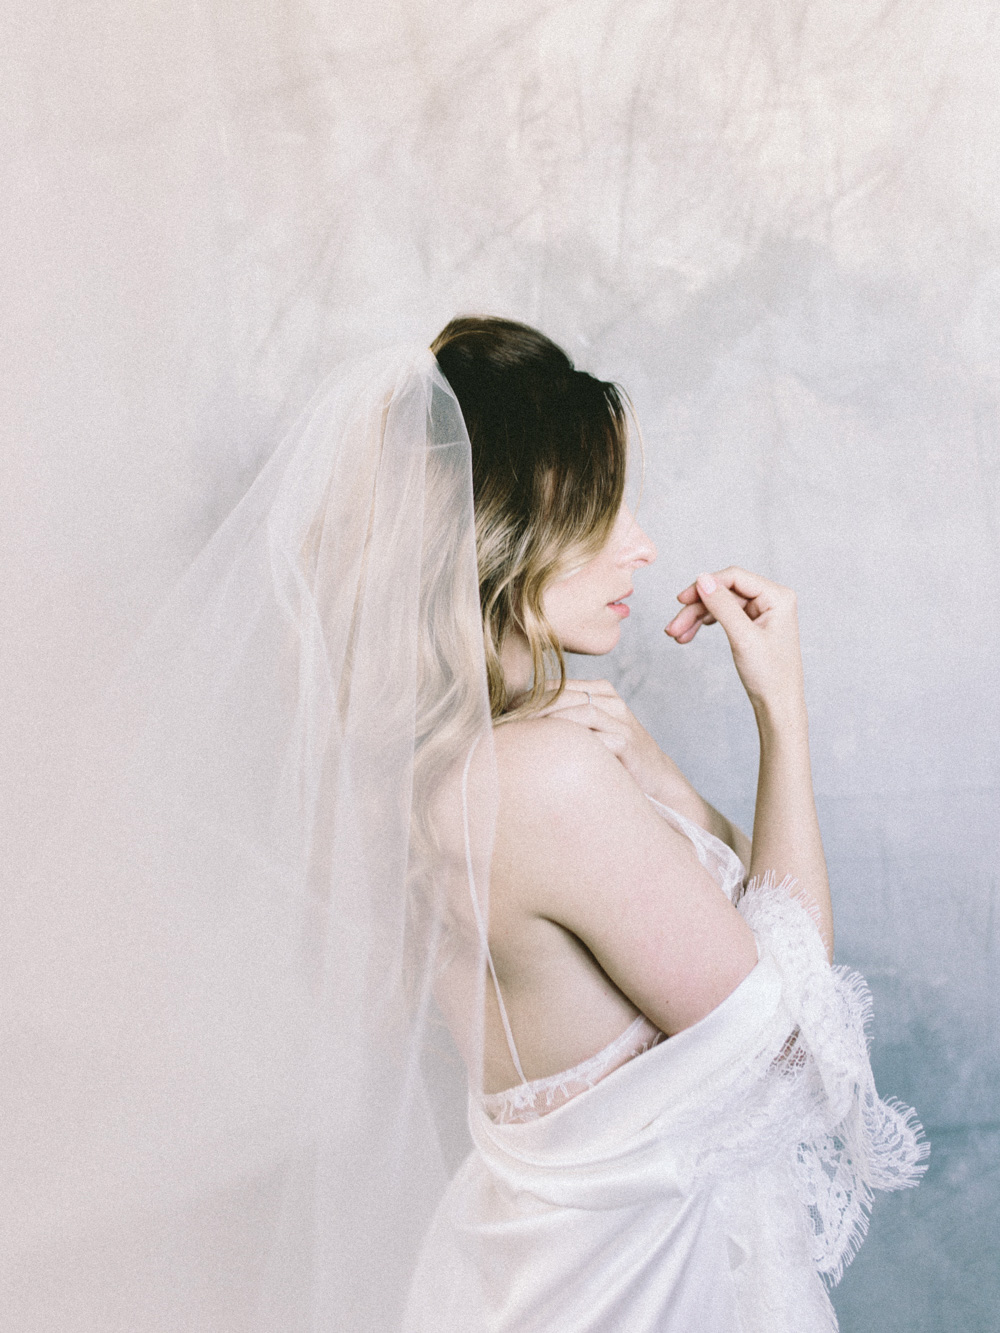 A bride in Girl and A Serious Dream veil and lingerie in a restful pose before dressing for her wedding day